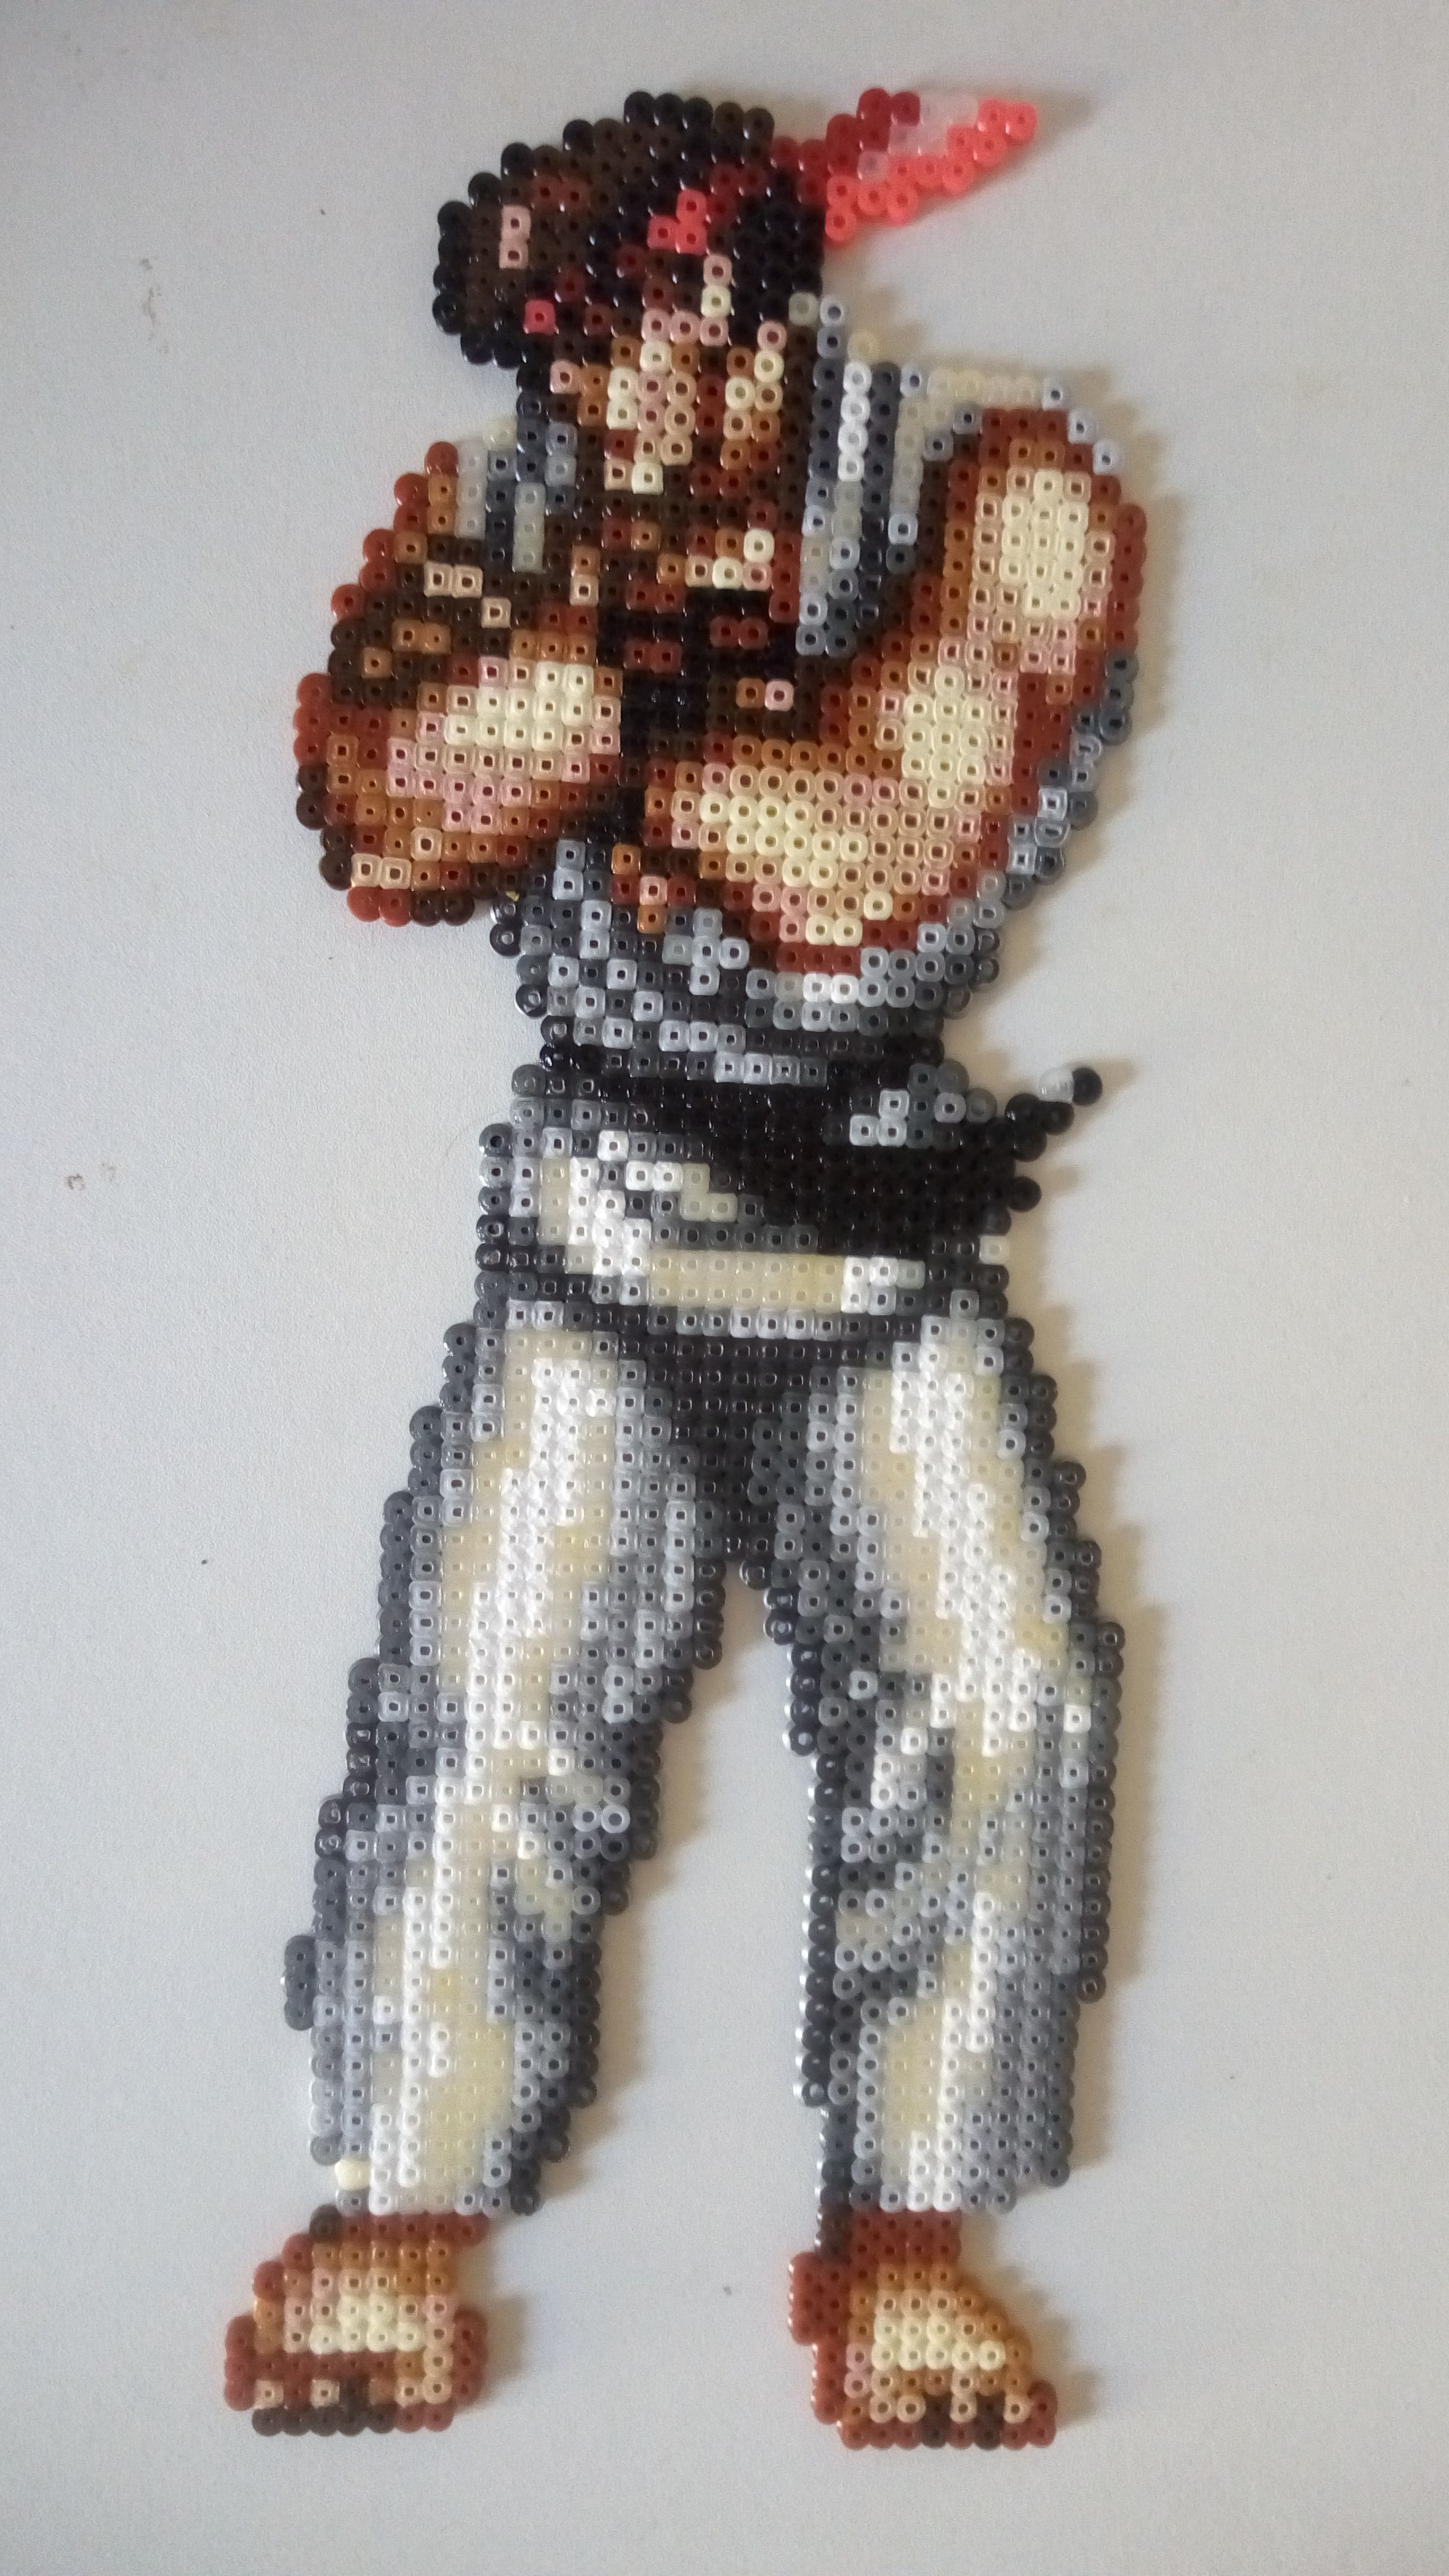 Ryu Street Fighter 2 Official Sprite Victory Perler Beads Pixel